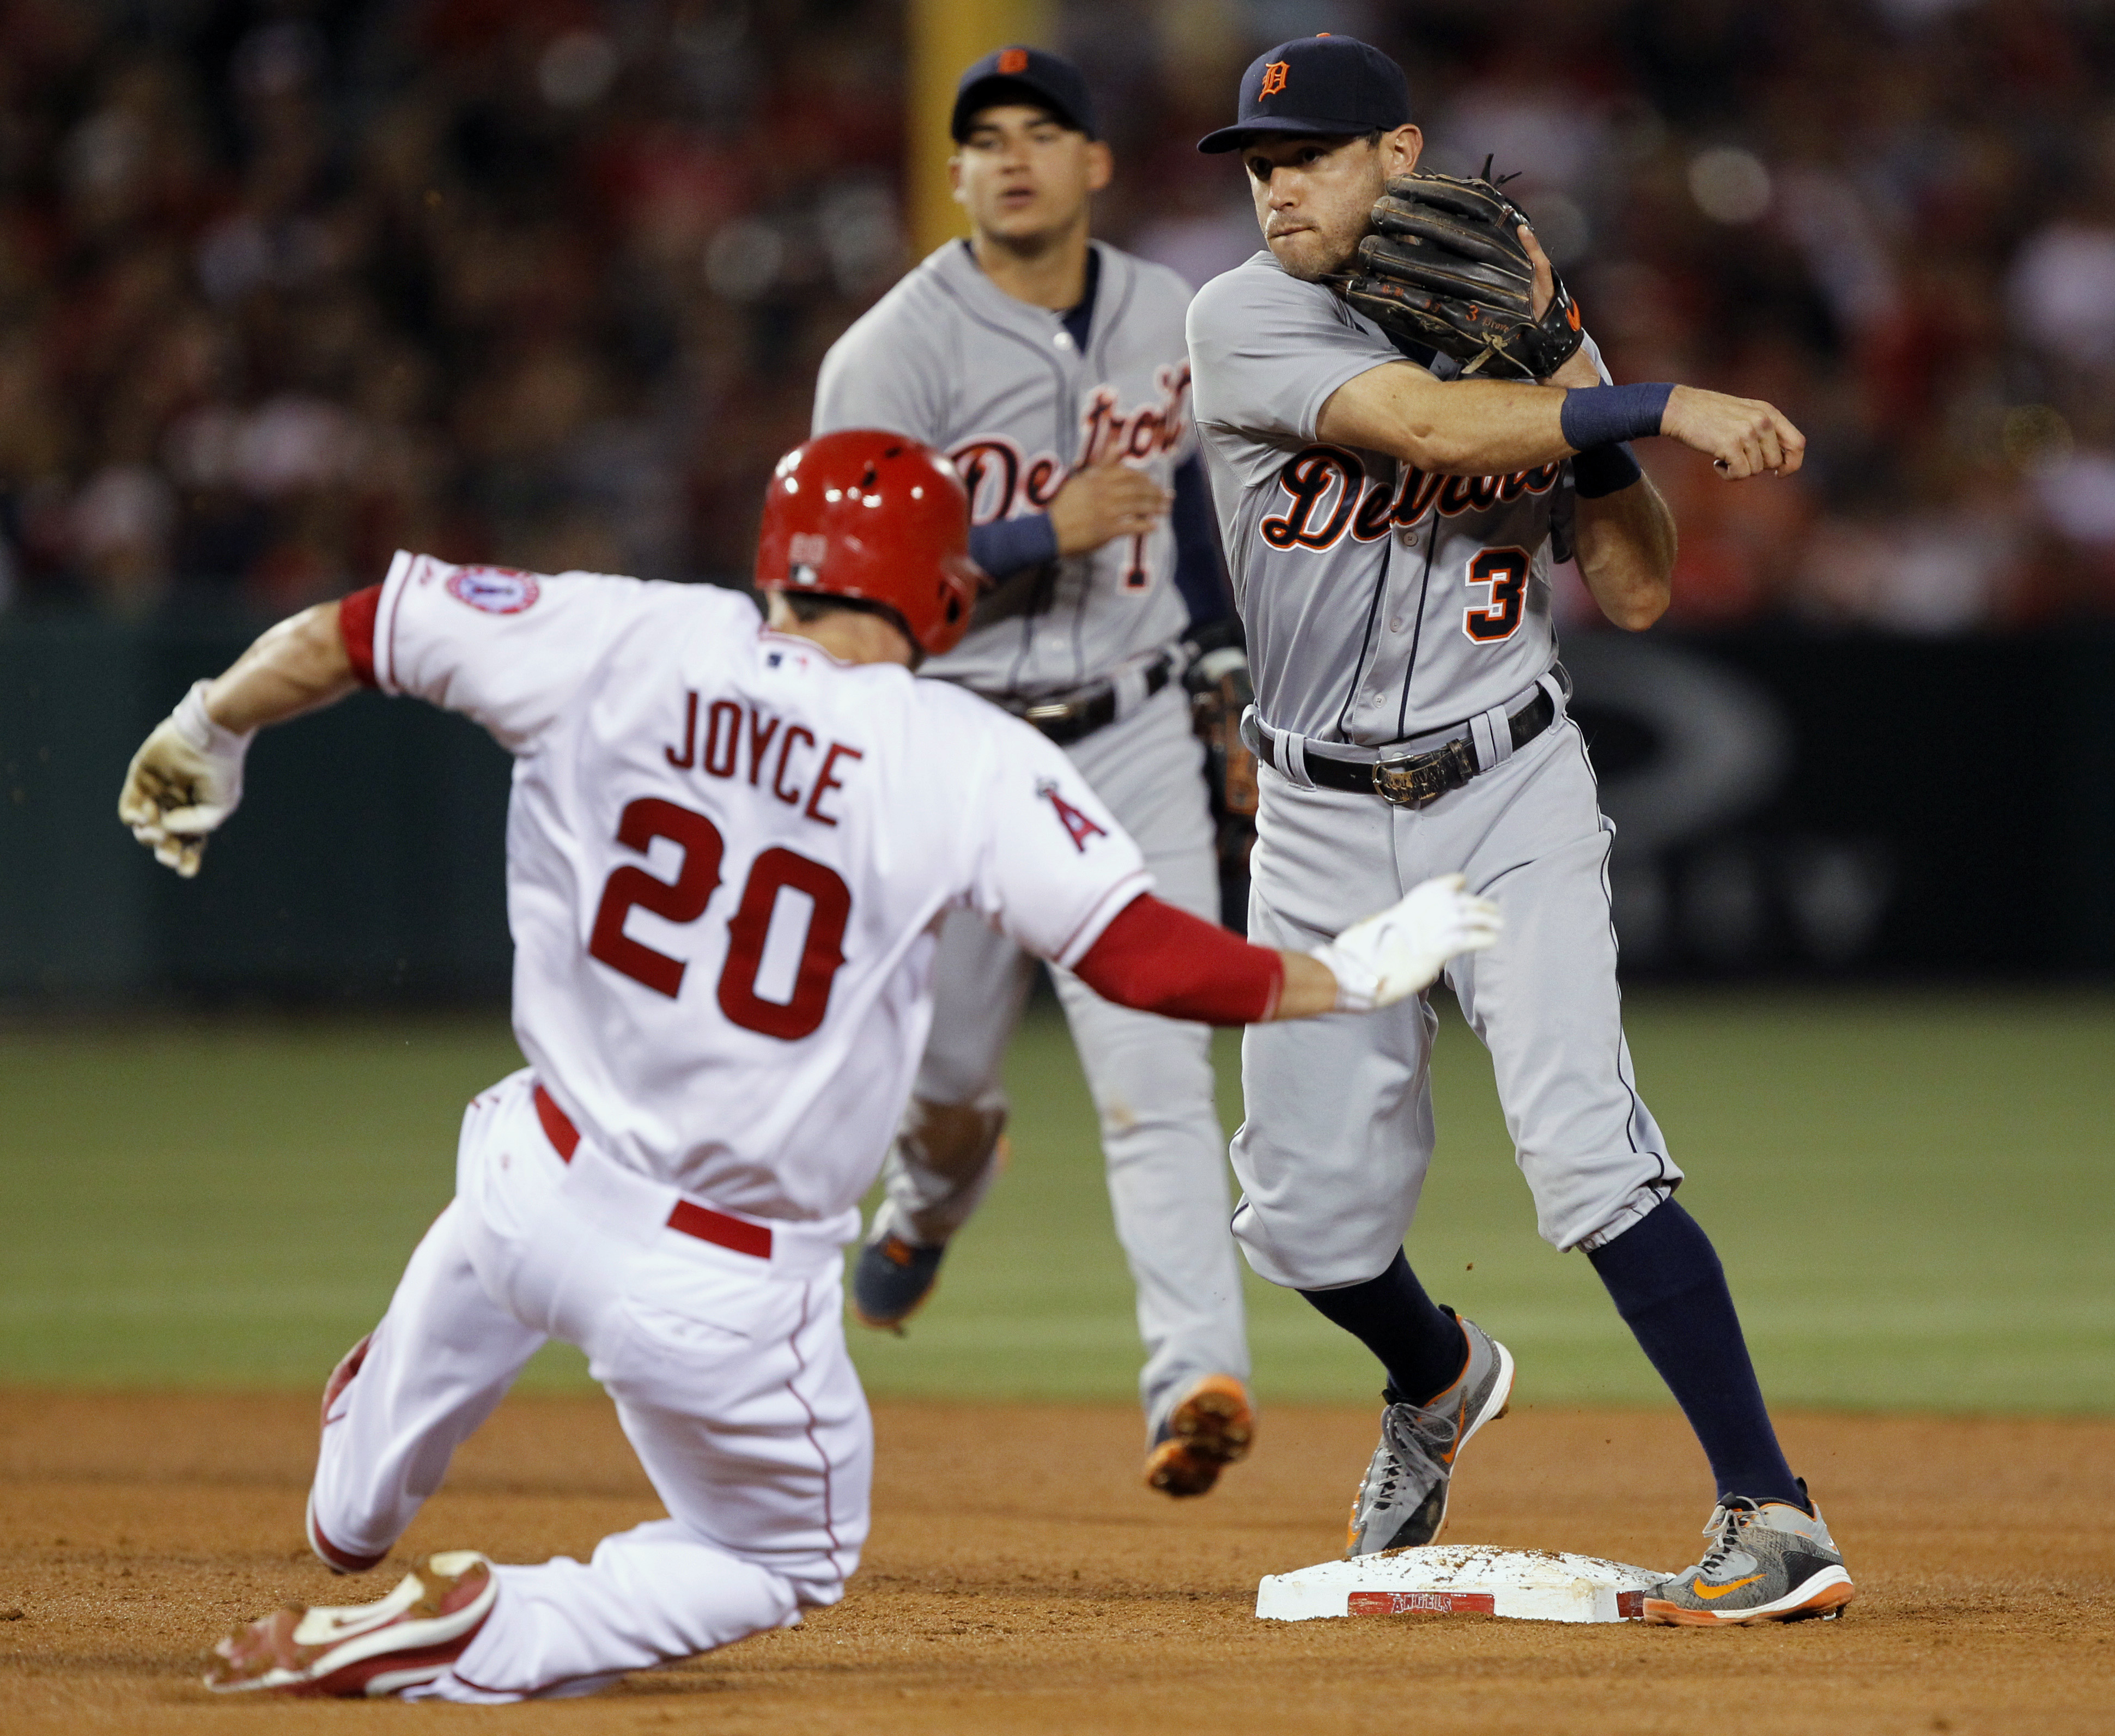 Detroit Tigers second baseman Ian Kinsler (3) makes the relay to first over Los Angeles Angels' Matt Joyce (20), to get the Angels' Chris Iannetta at first or a double play, with shortstop Jose Iglesias watching, during the fourth inning of a baseball gam